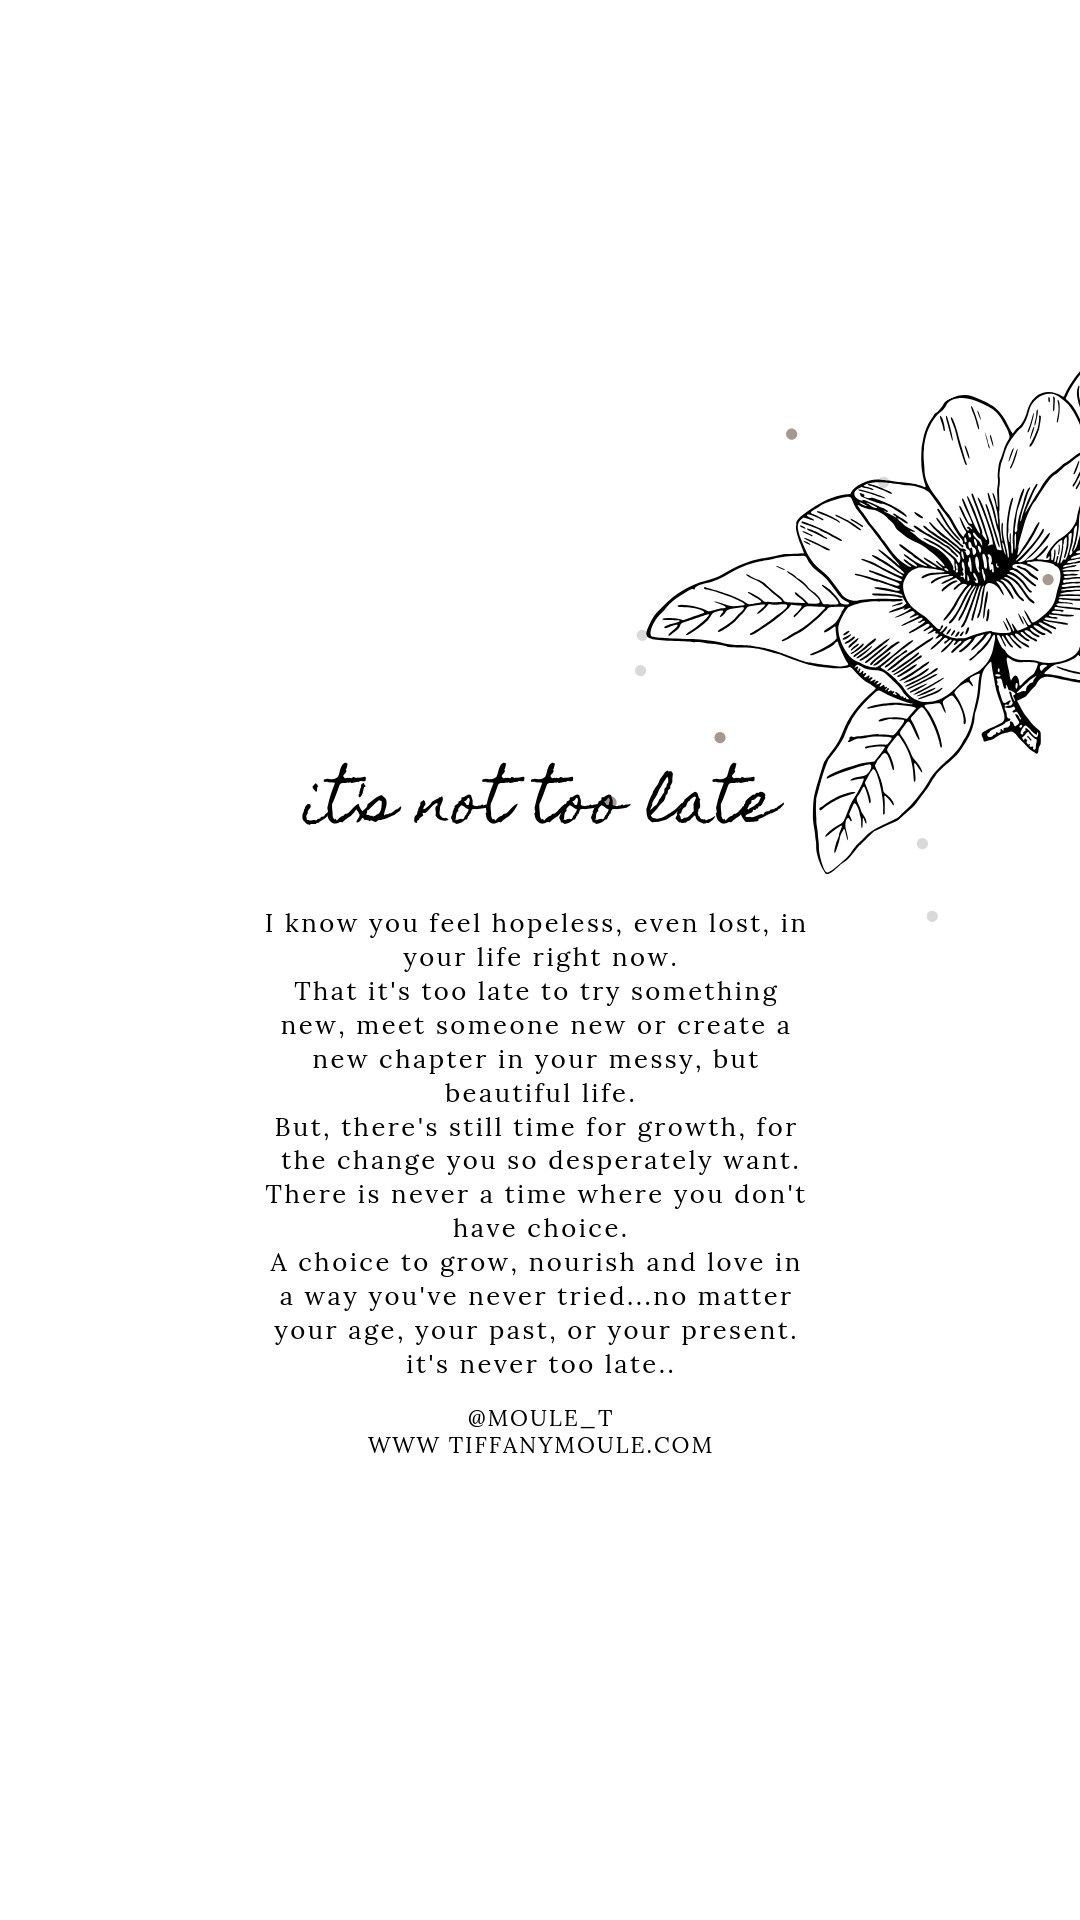 Its never too late to go after what matters most to you and even change (or not) #selflove #quote